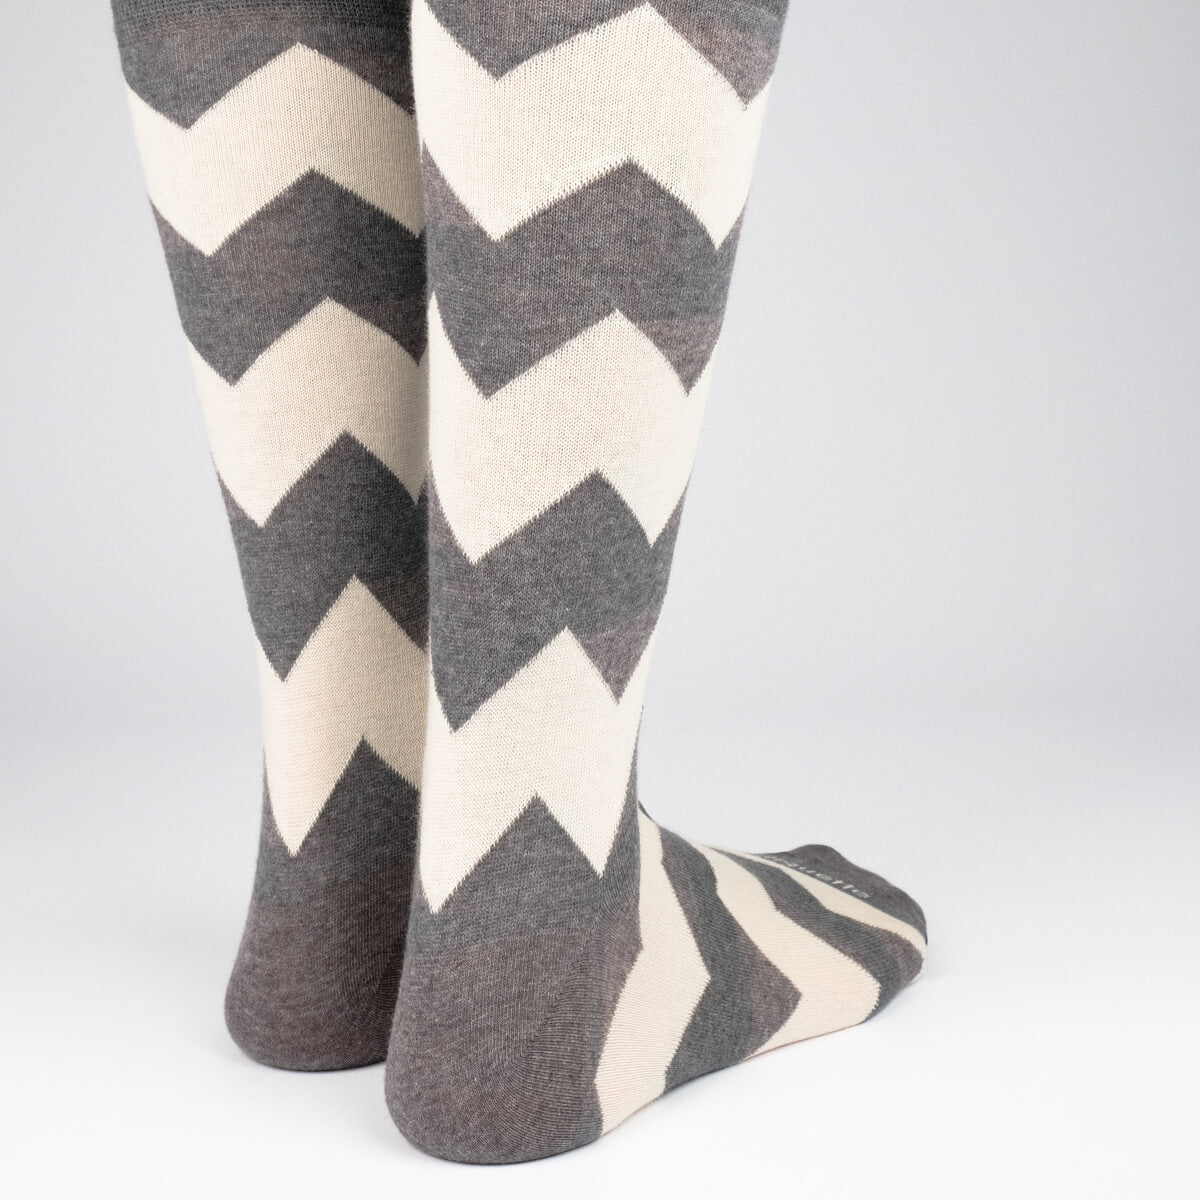 Mens Socks - Matterhorn Stripes Men's Socks - Dark Grey⎪Etiquette Clothiers